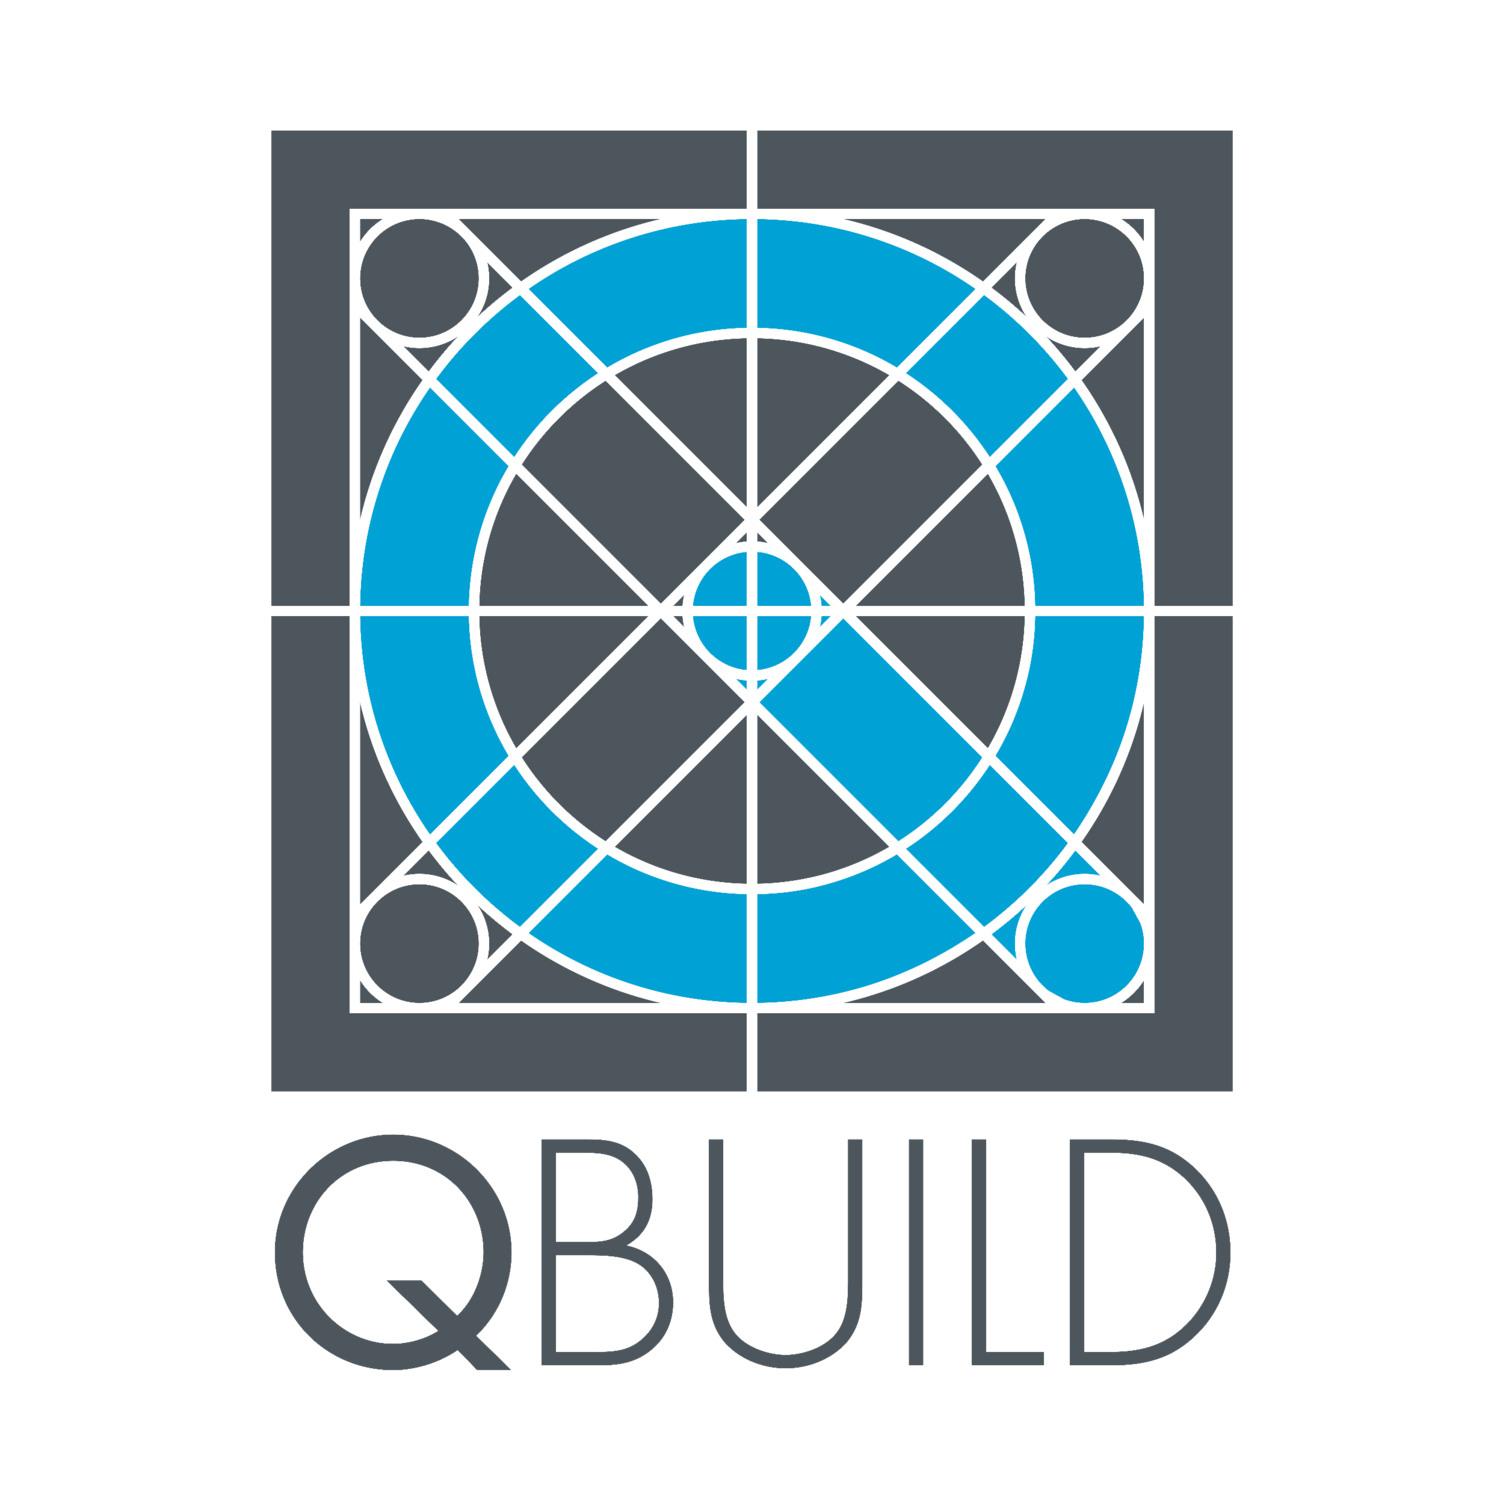 Q Build LTD | Luxury Home Builders in Scotland